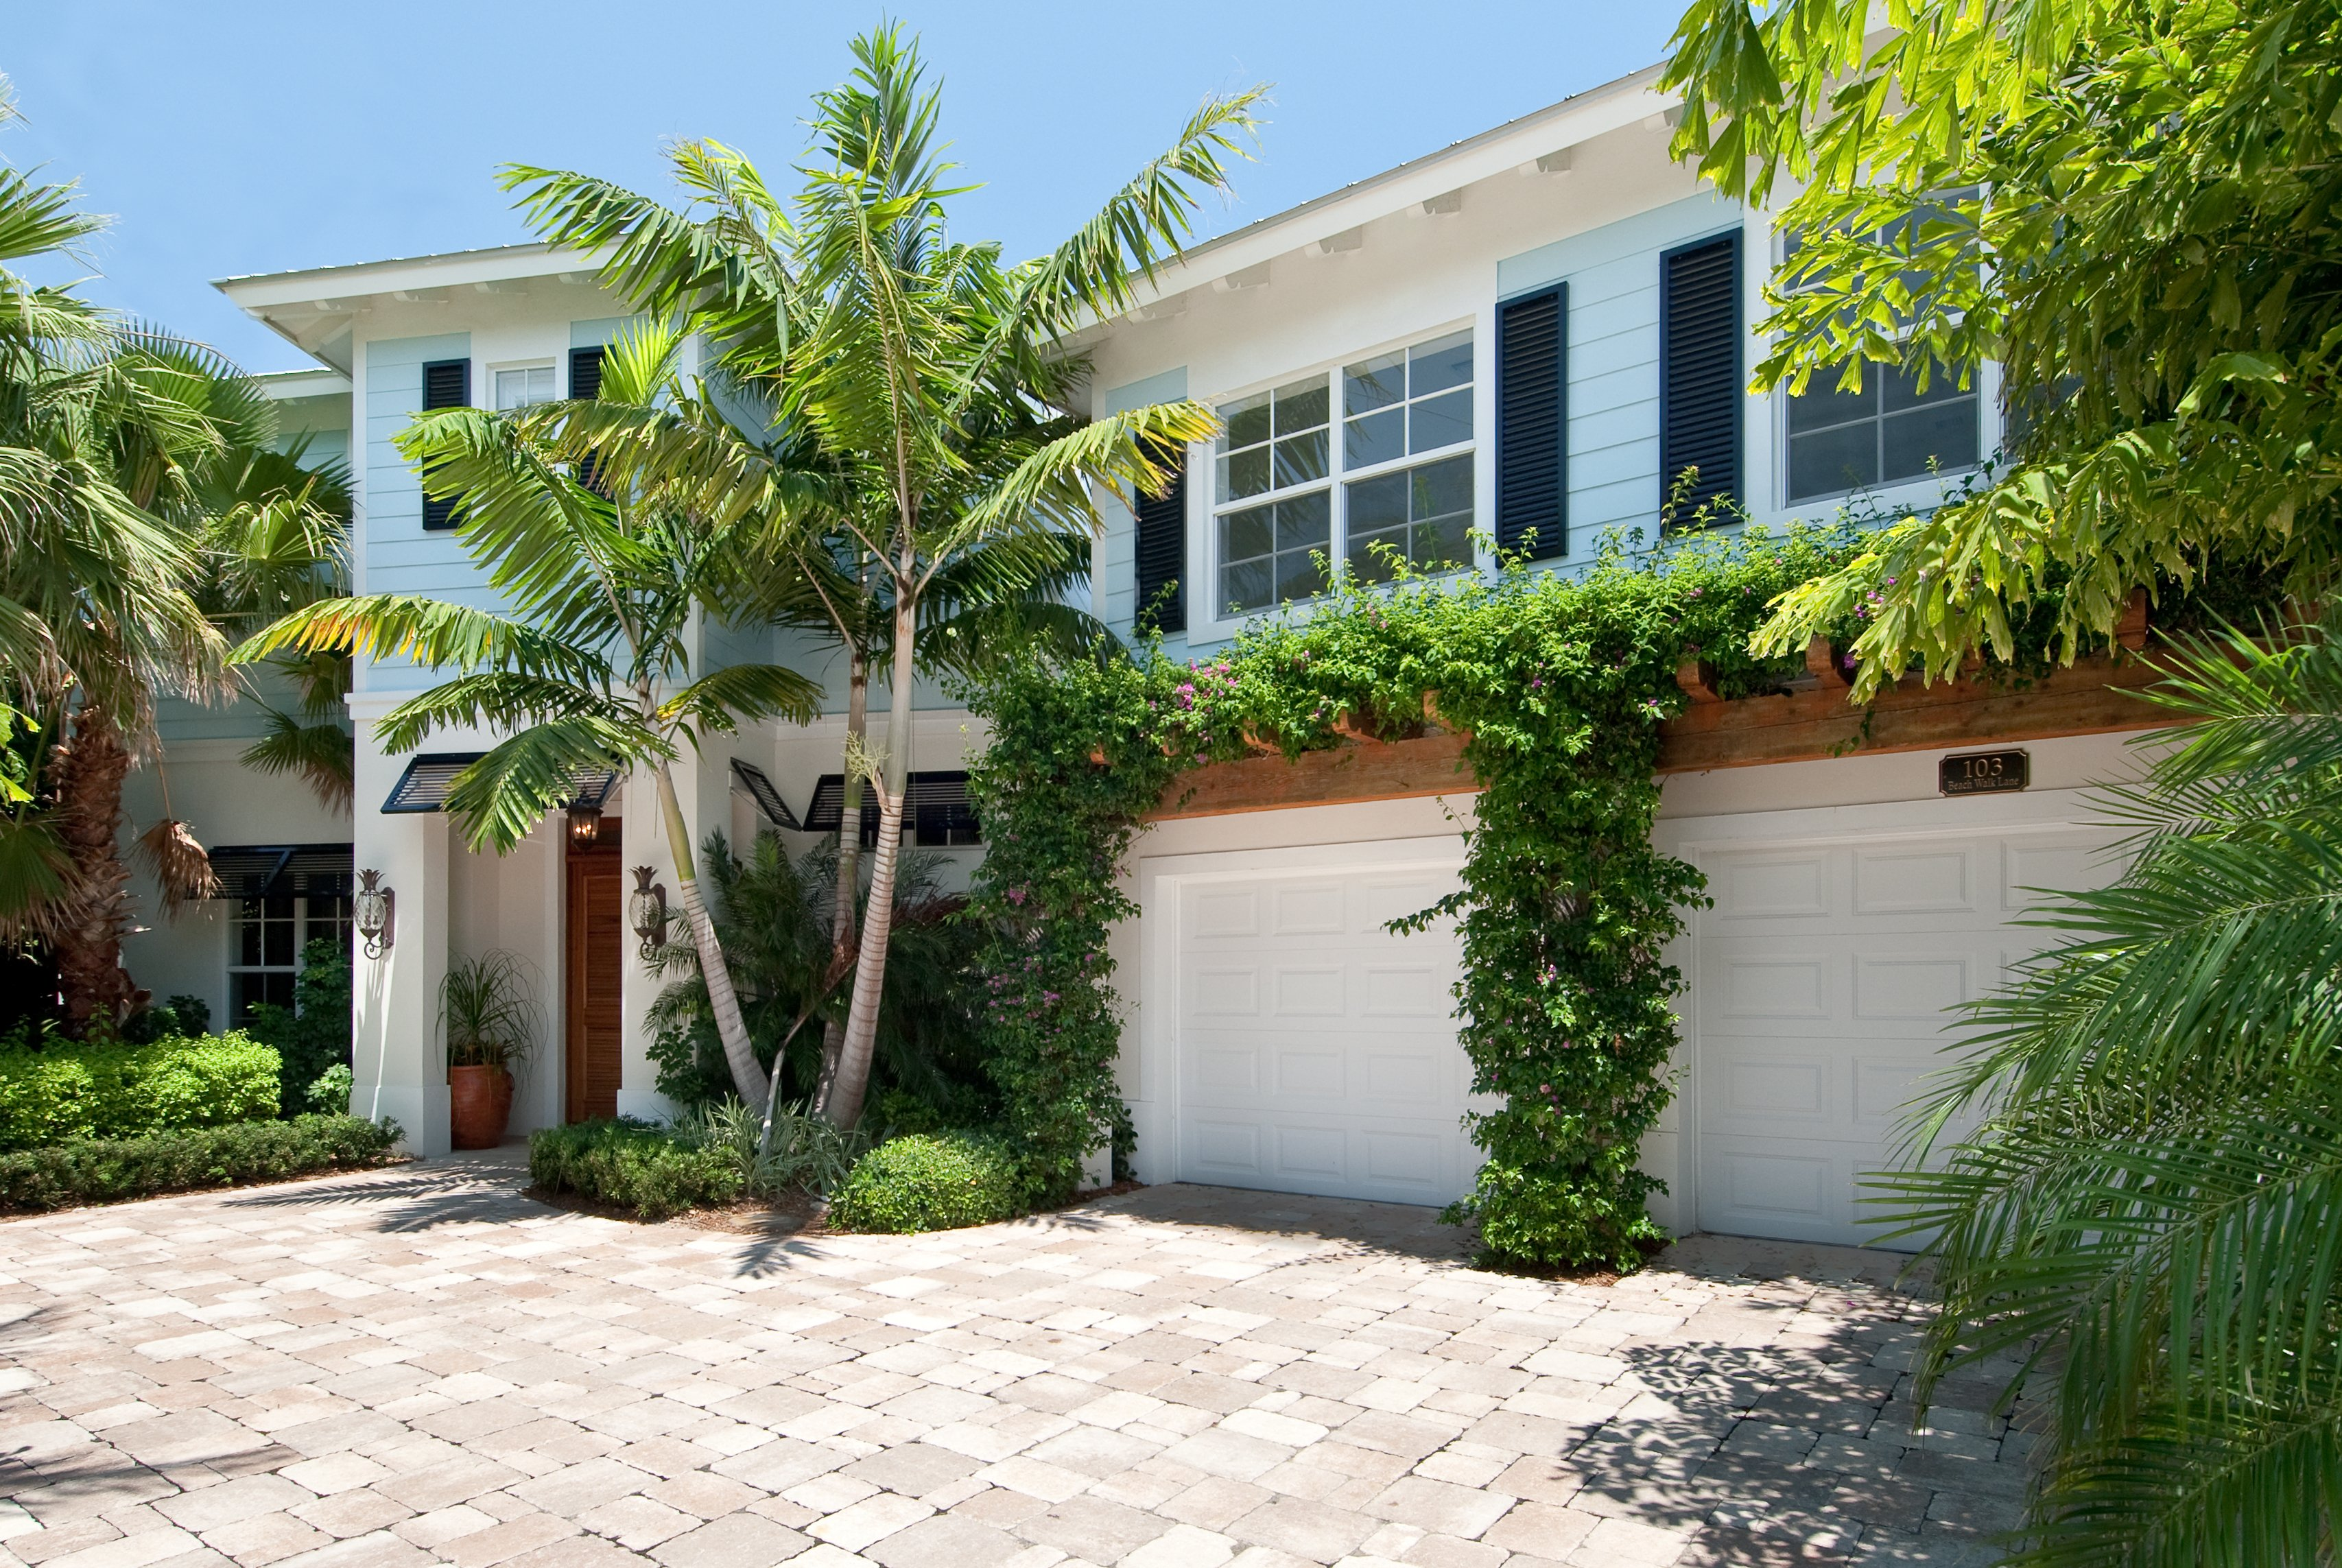 Looking for Florida foreclosures?